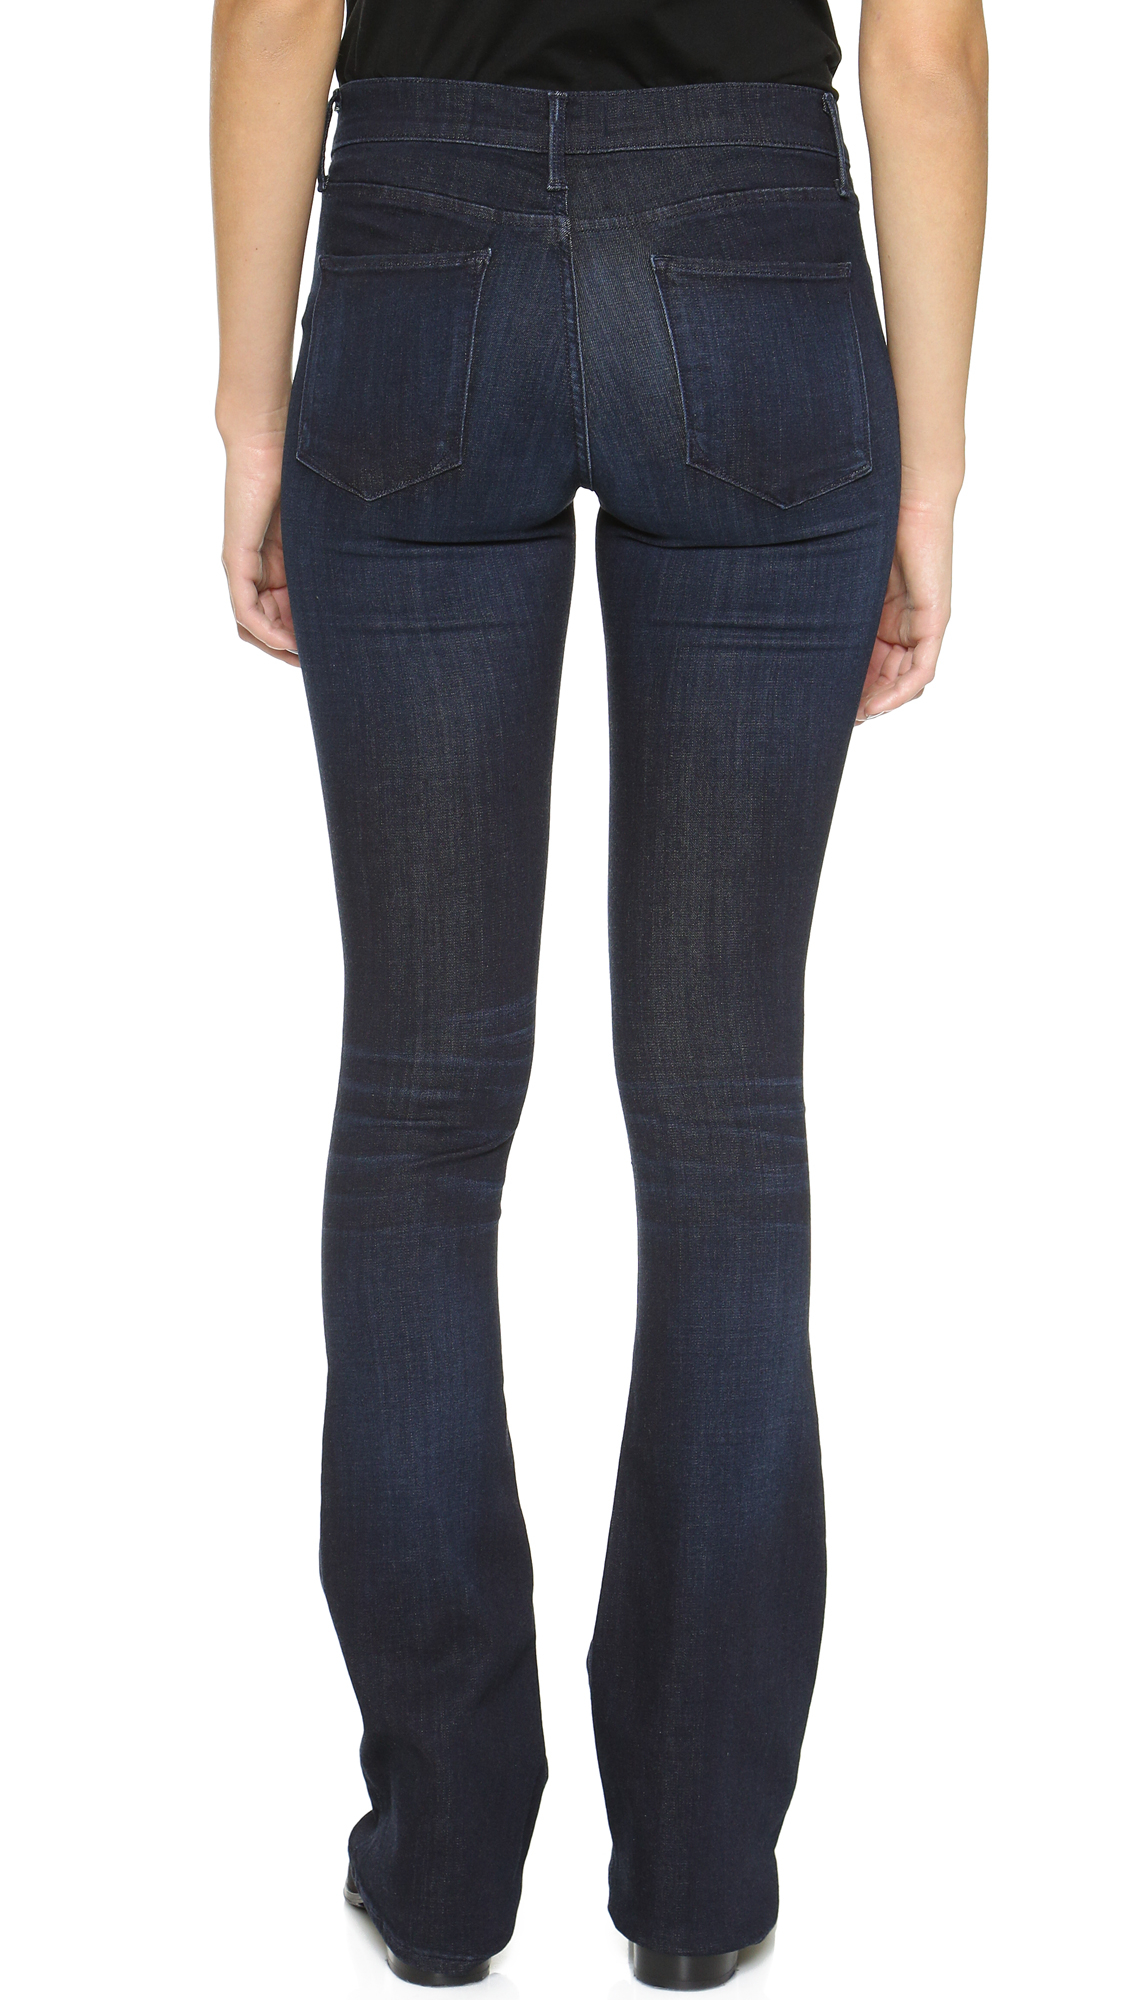 Ayr The Skinny Flare Jeans